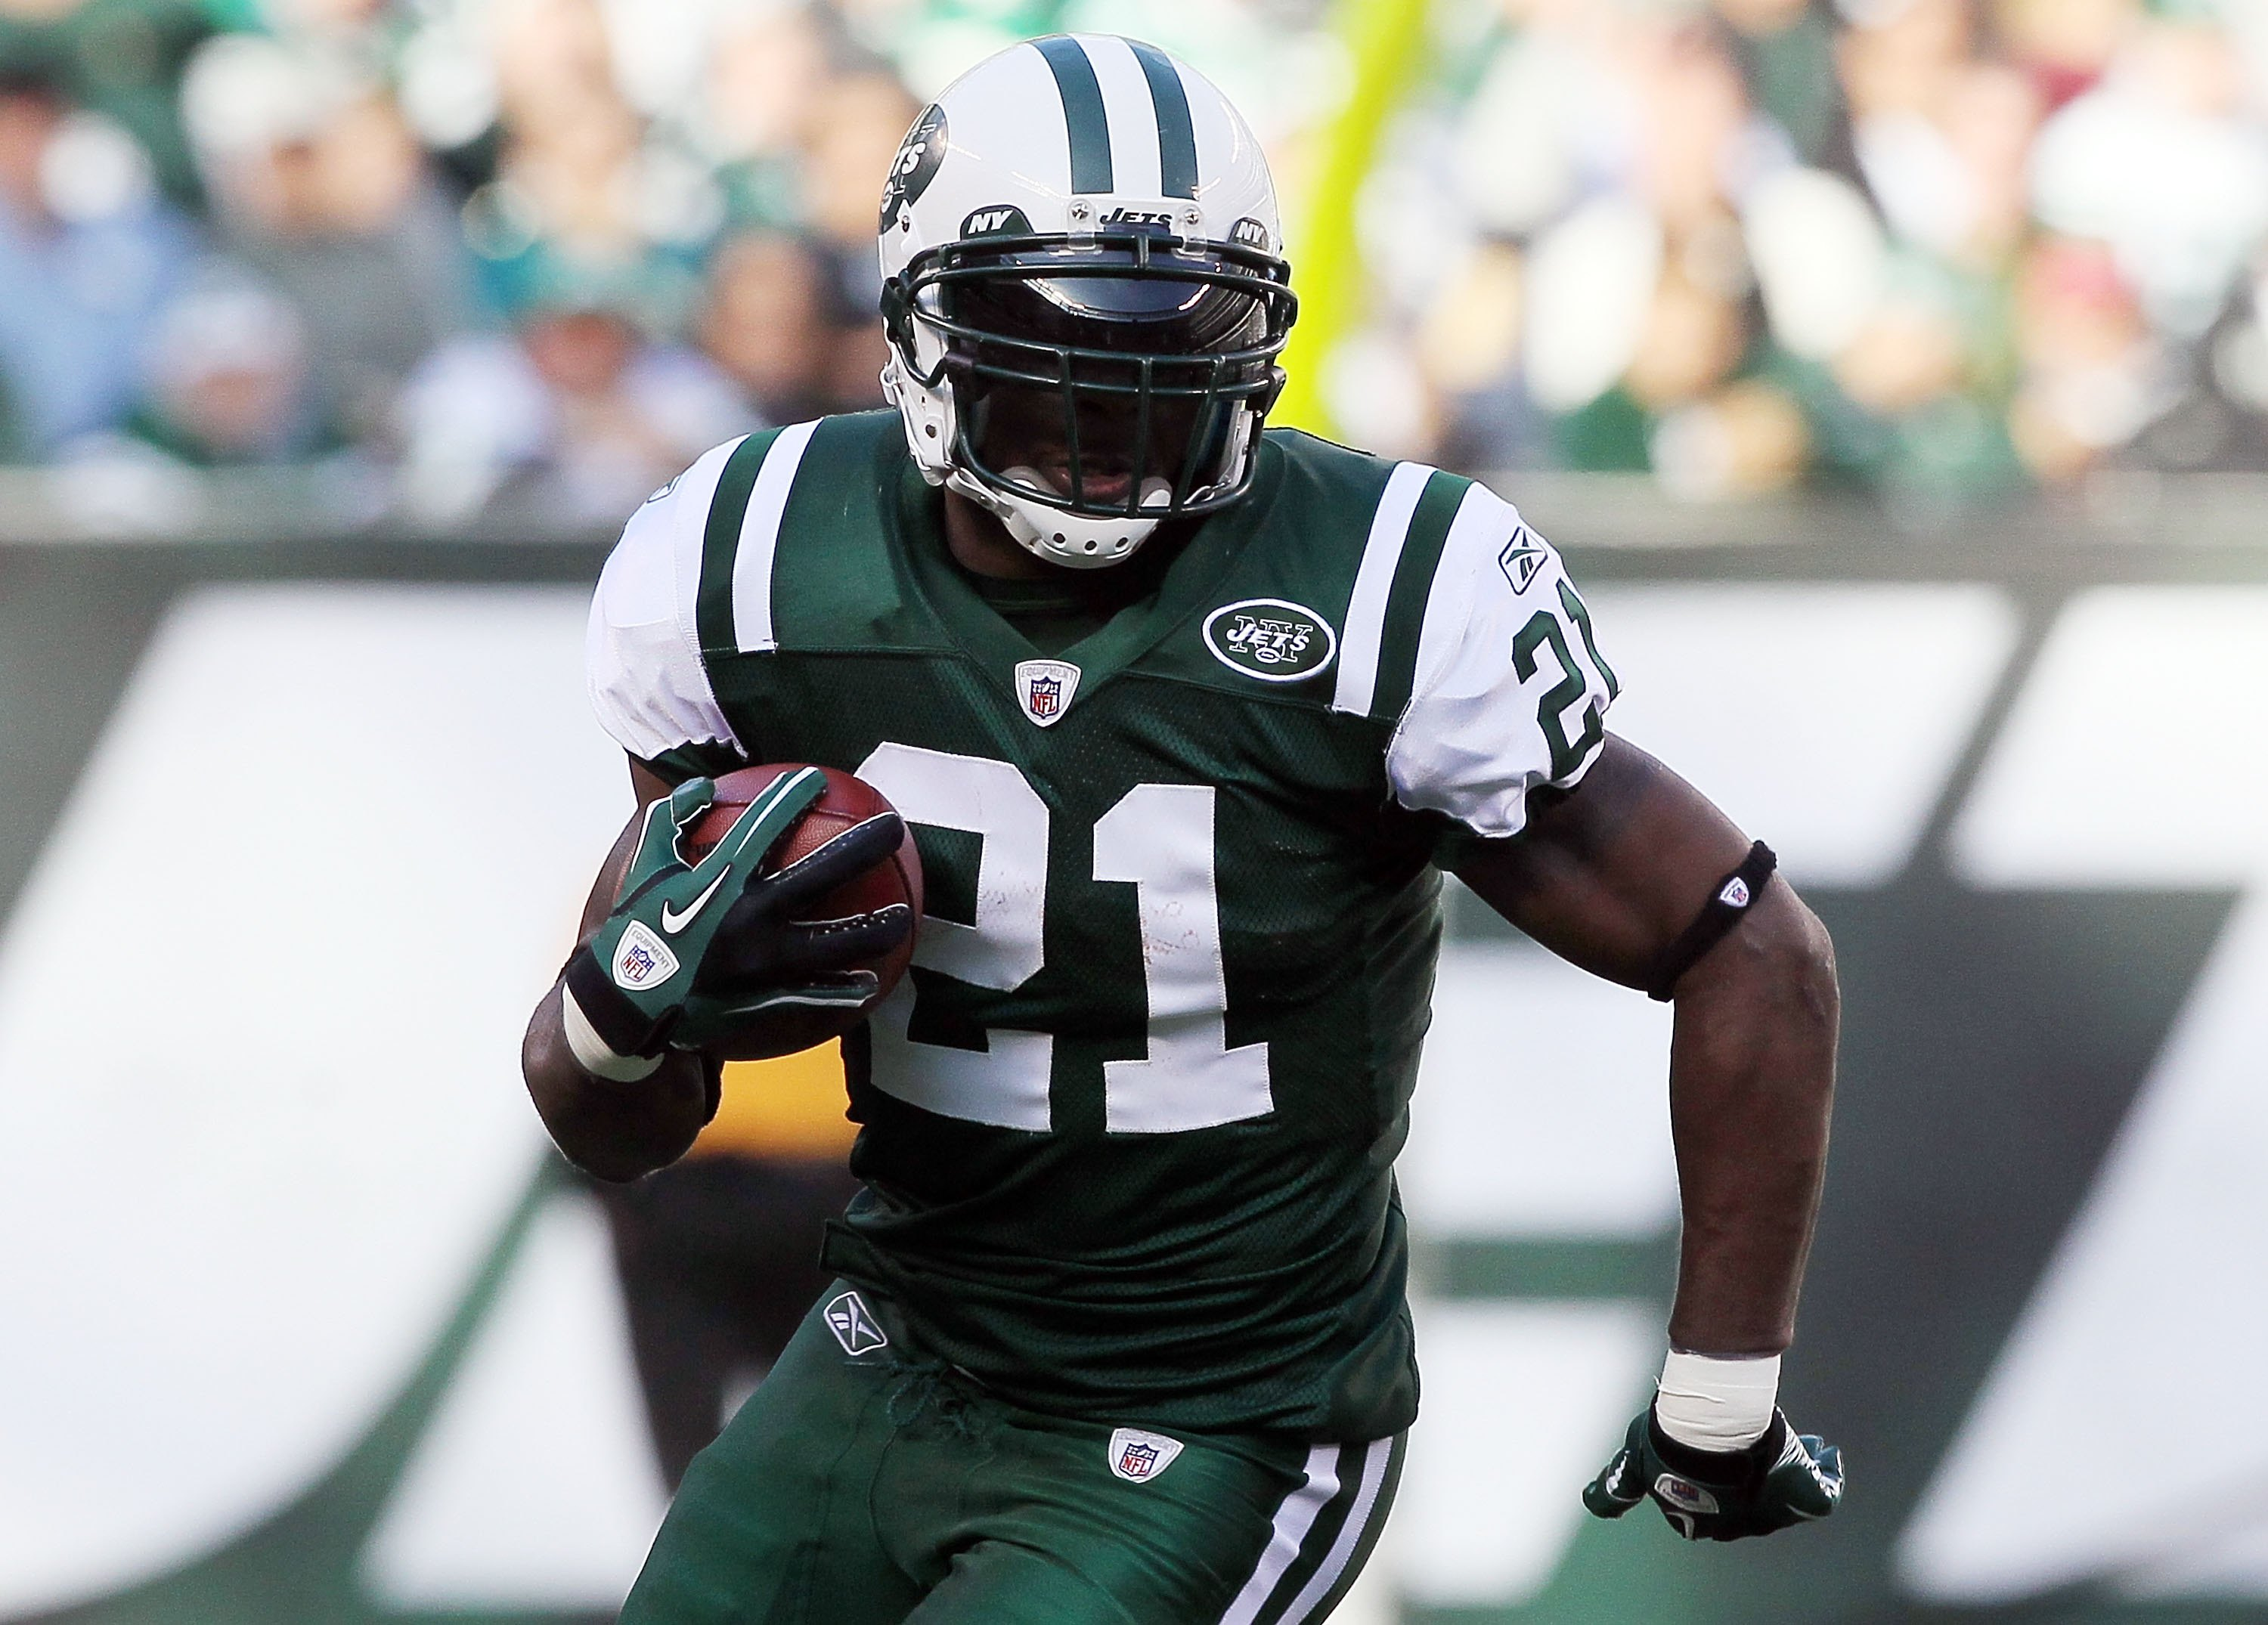 EAST RUTHERFORD, NJ - NOVEMBER 21:  LaDainian Tomlinson #21 of the New York Jets runs against the Houston Texans on November 21, 2010 at the New Meadowlands Stadium in East Rutherford, New Jersey.  (Photo by Jim McIsaac/Getty Images)